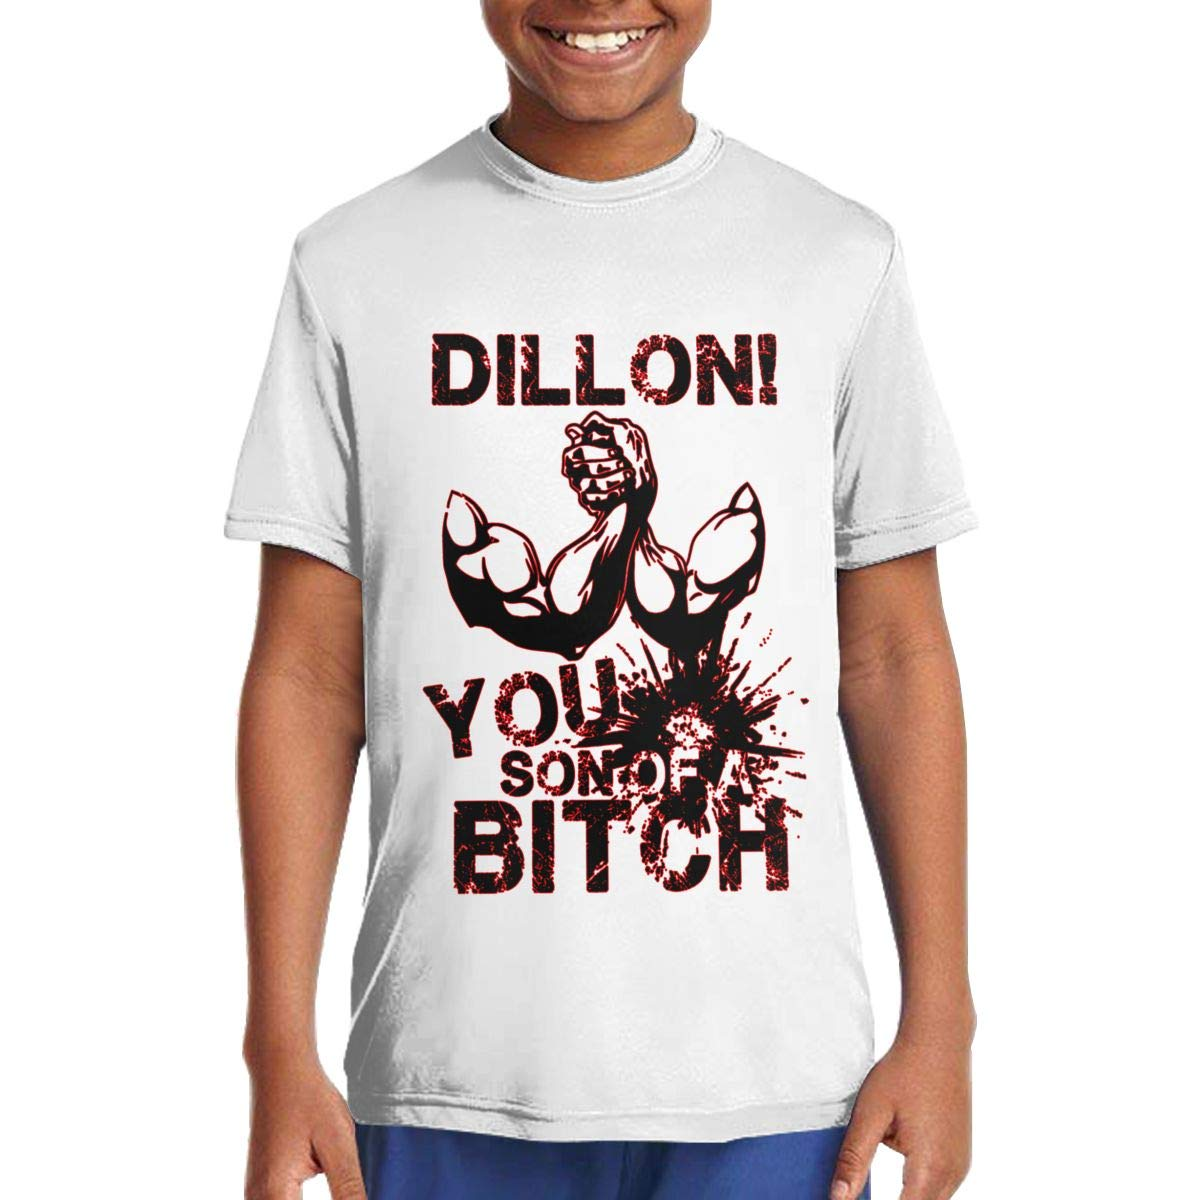 Dillon You Son of A Bitch Cotton Teenage Round Neck Short Sleeve Tee for Teen Boys and Girls Classic Fit White